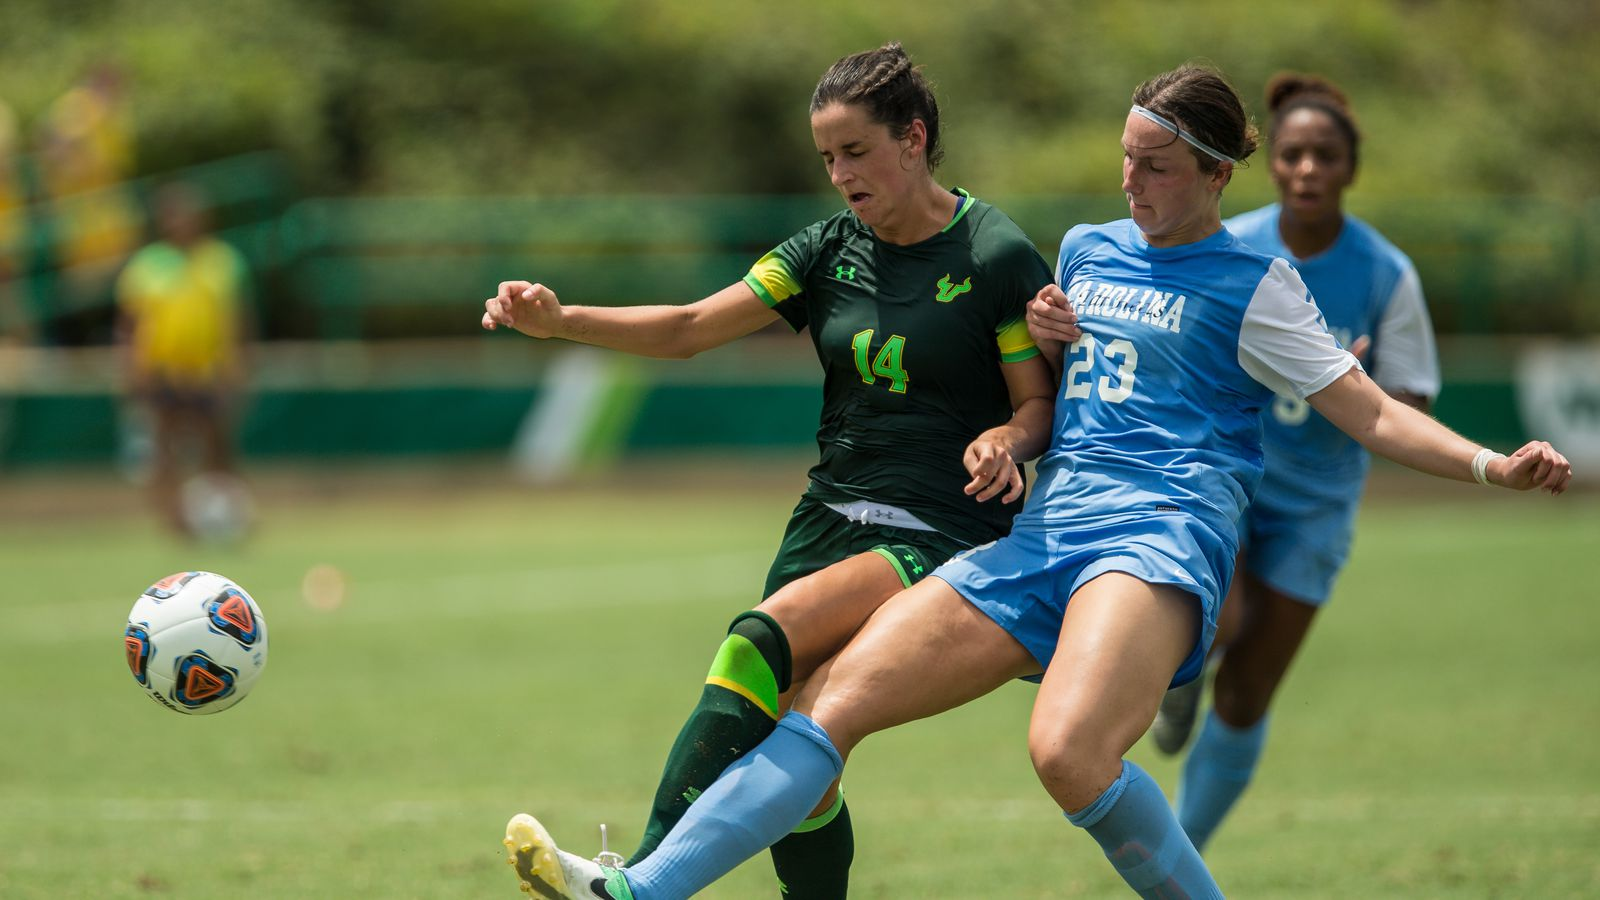 womens non conference soccer action - HD2420×1613